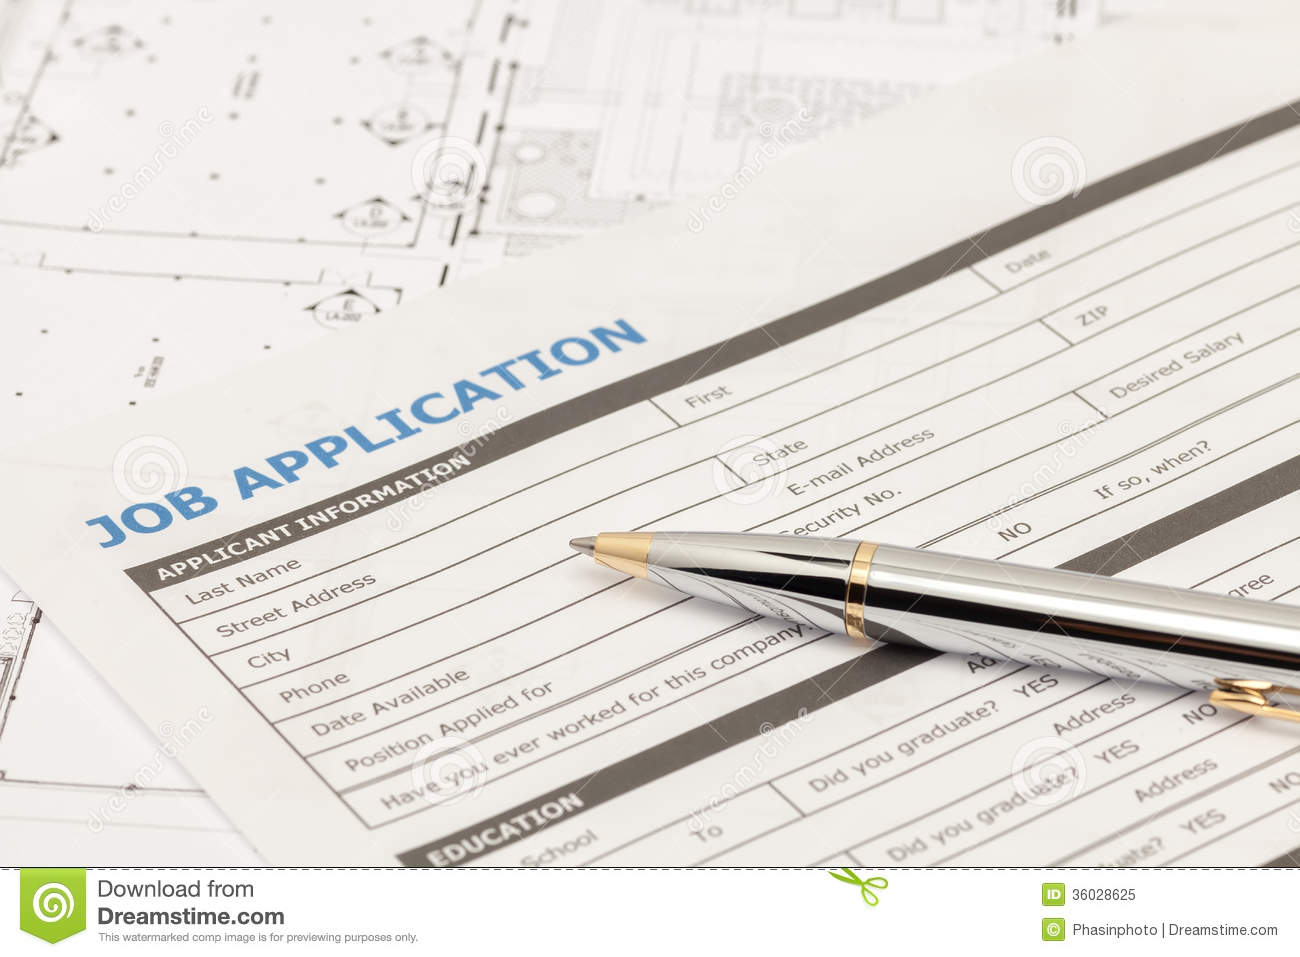 Job application form stock image. Image of technical - 36028625